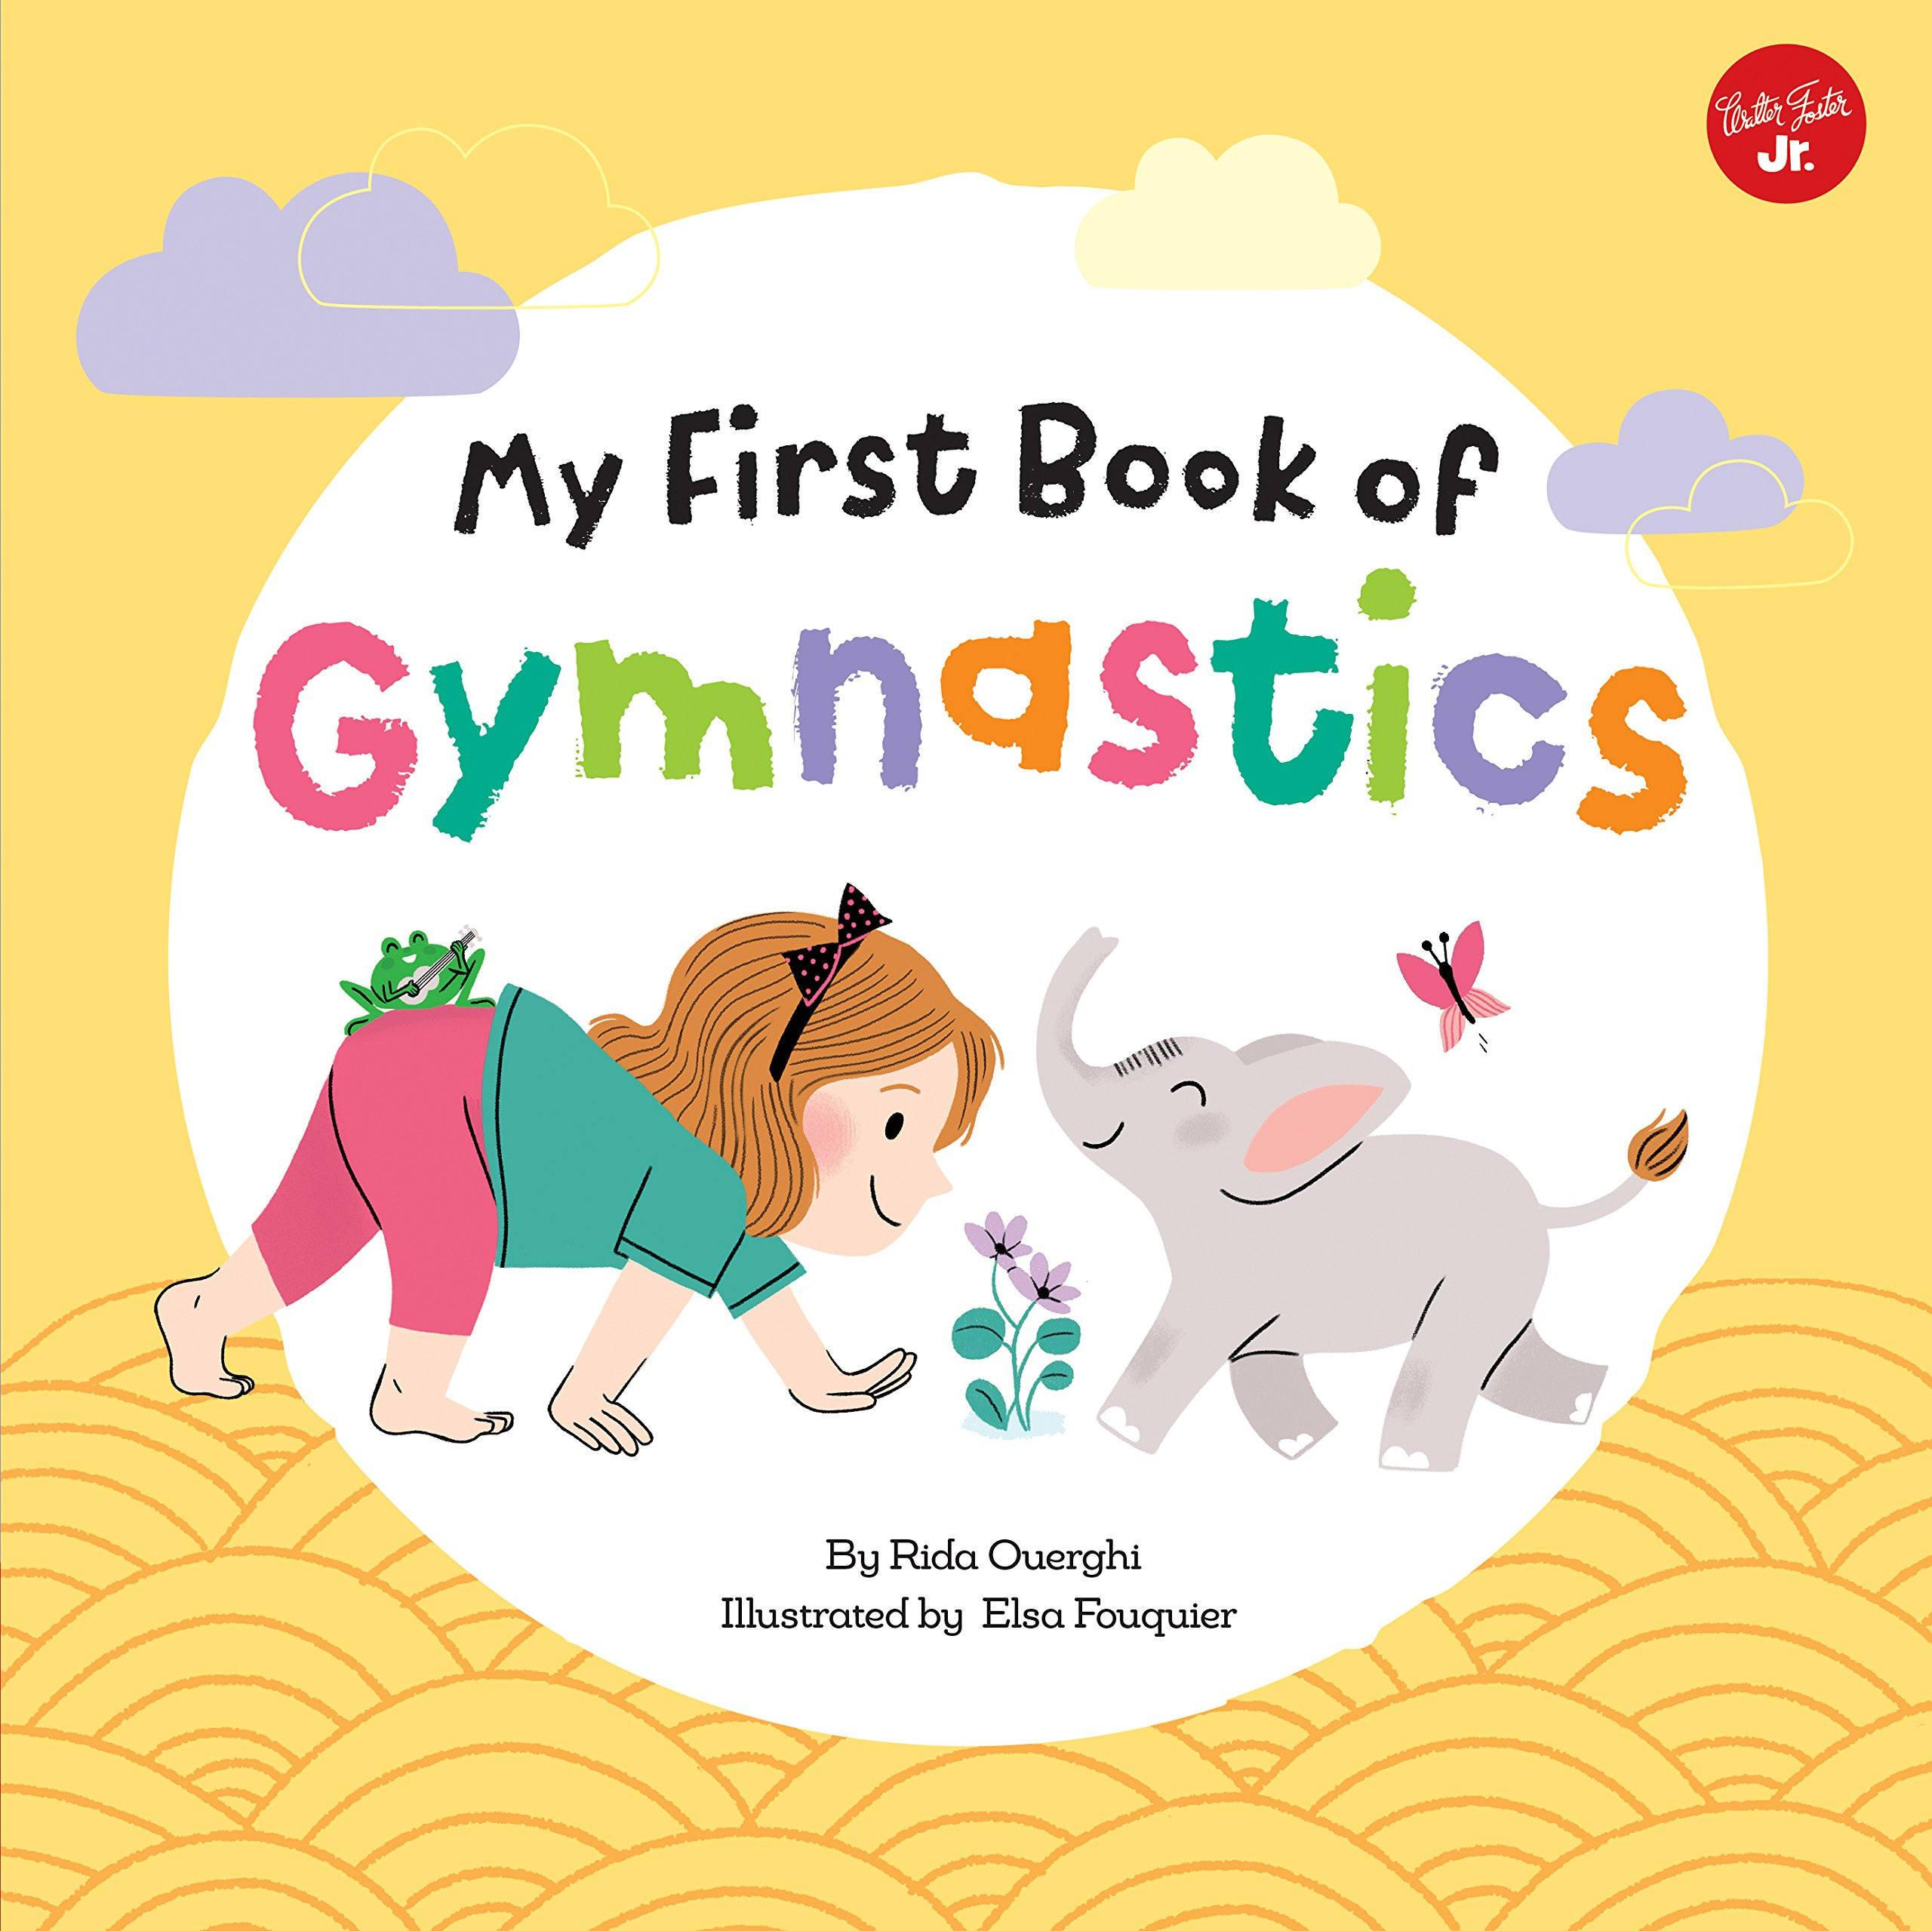 My First Book of Gymnastics: Movement Exercises for Young Children (My First Book Of ... Series)